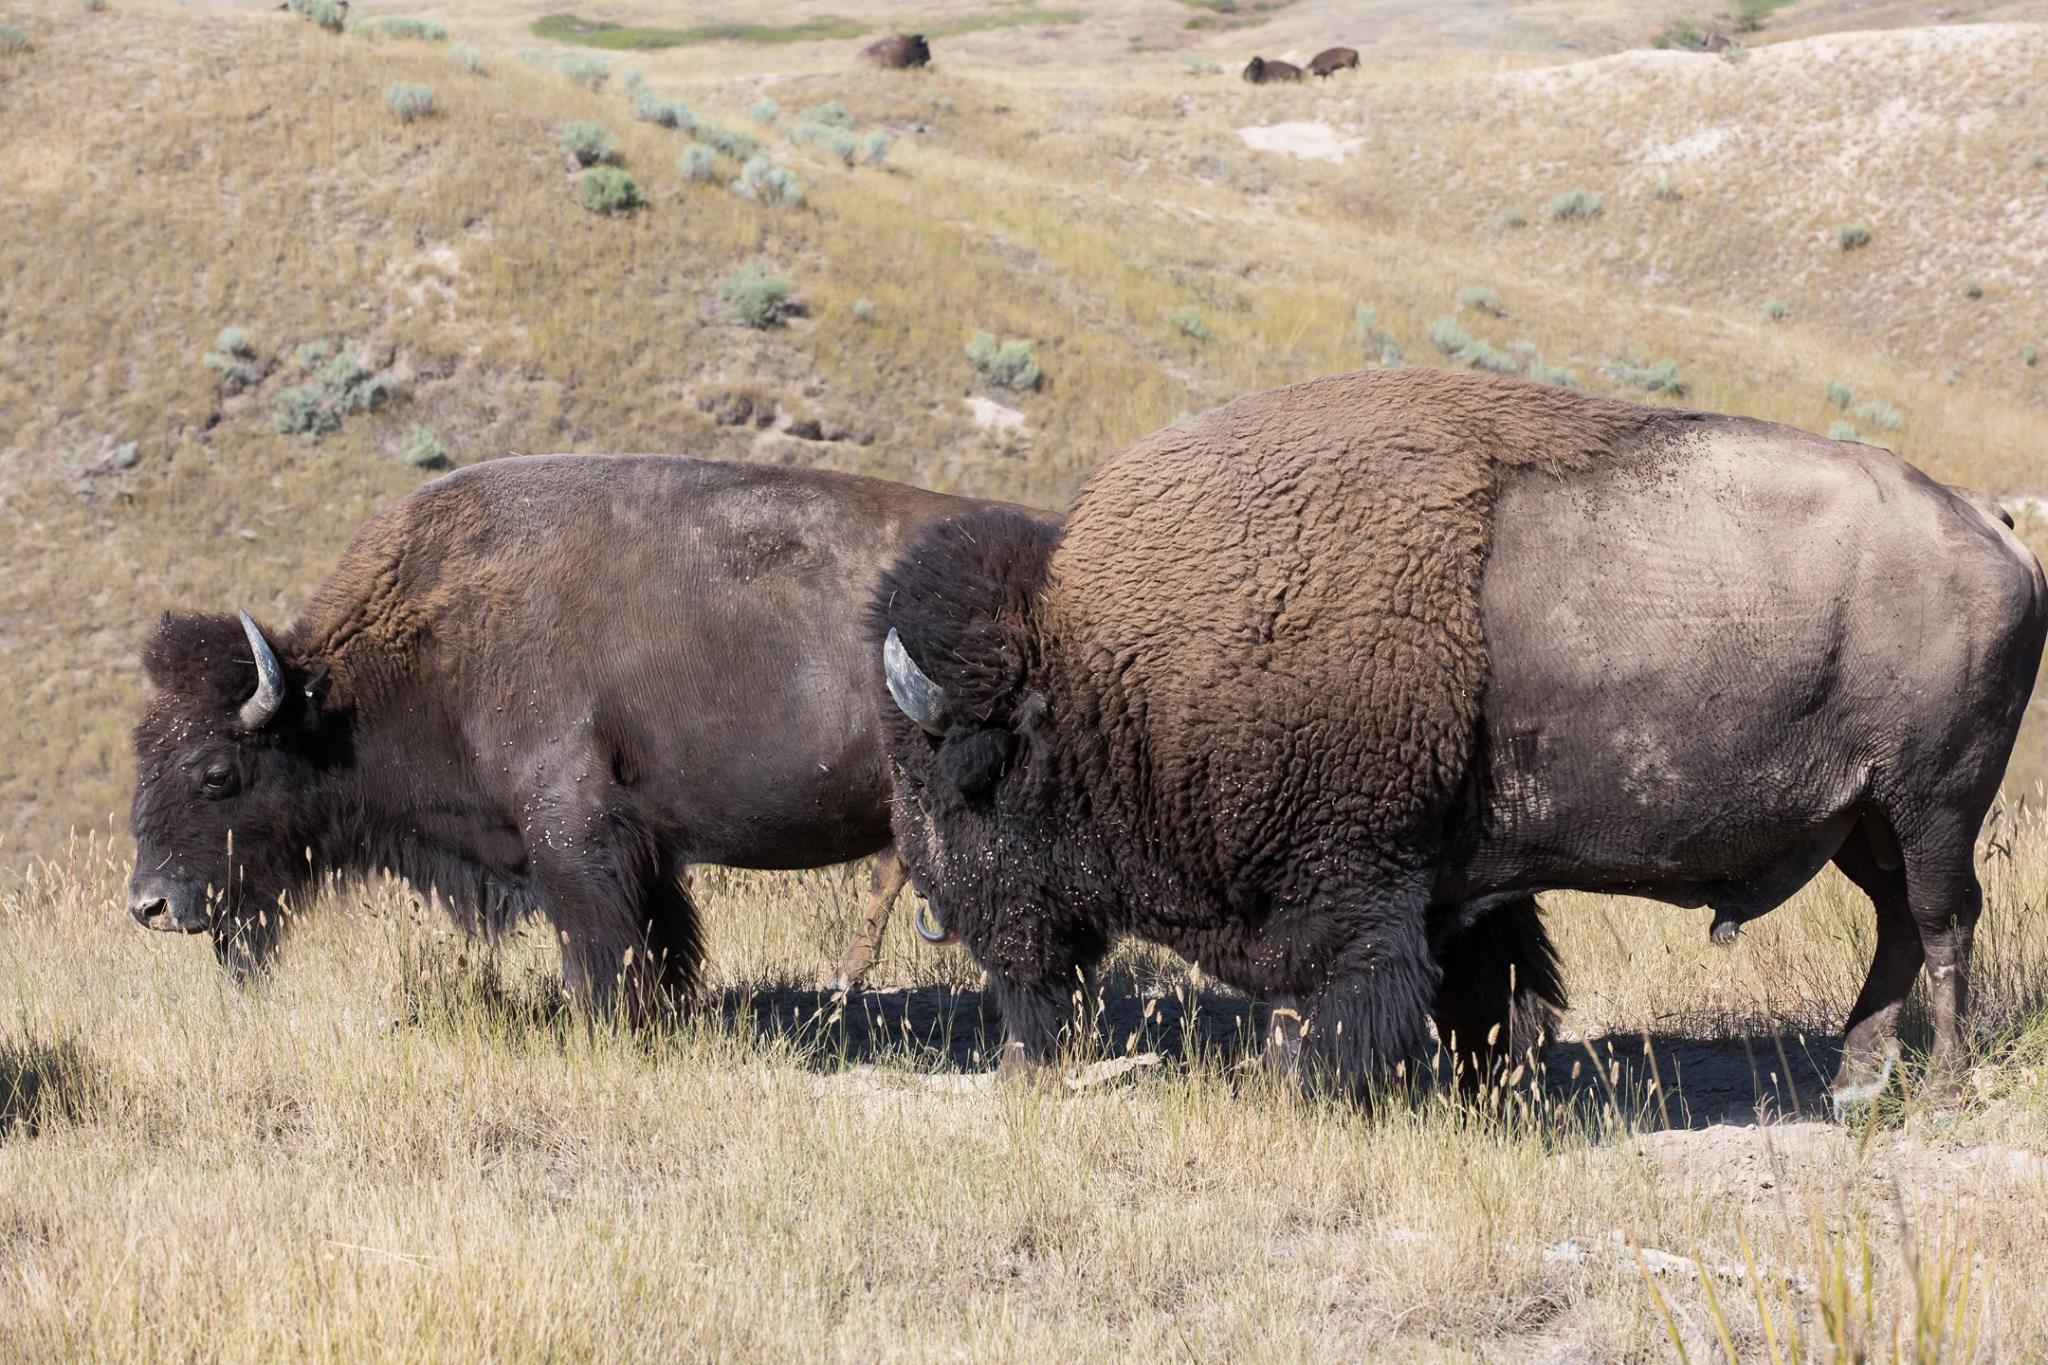 Vernon Finley: Confederated Salish and Kootenai Tribes seek return of National Bison Range